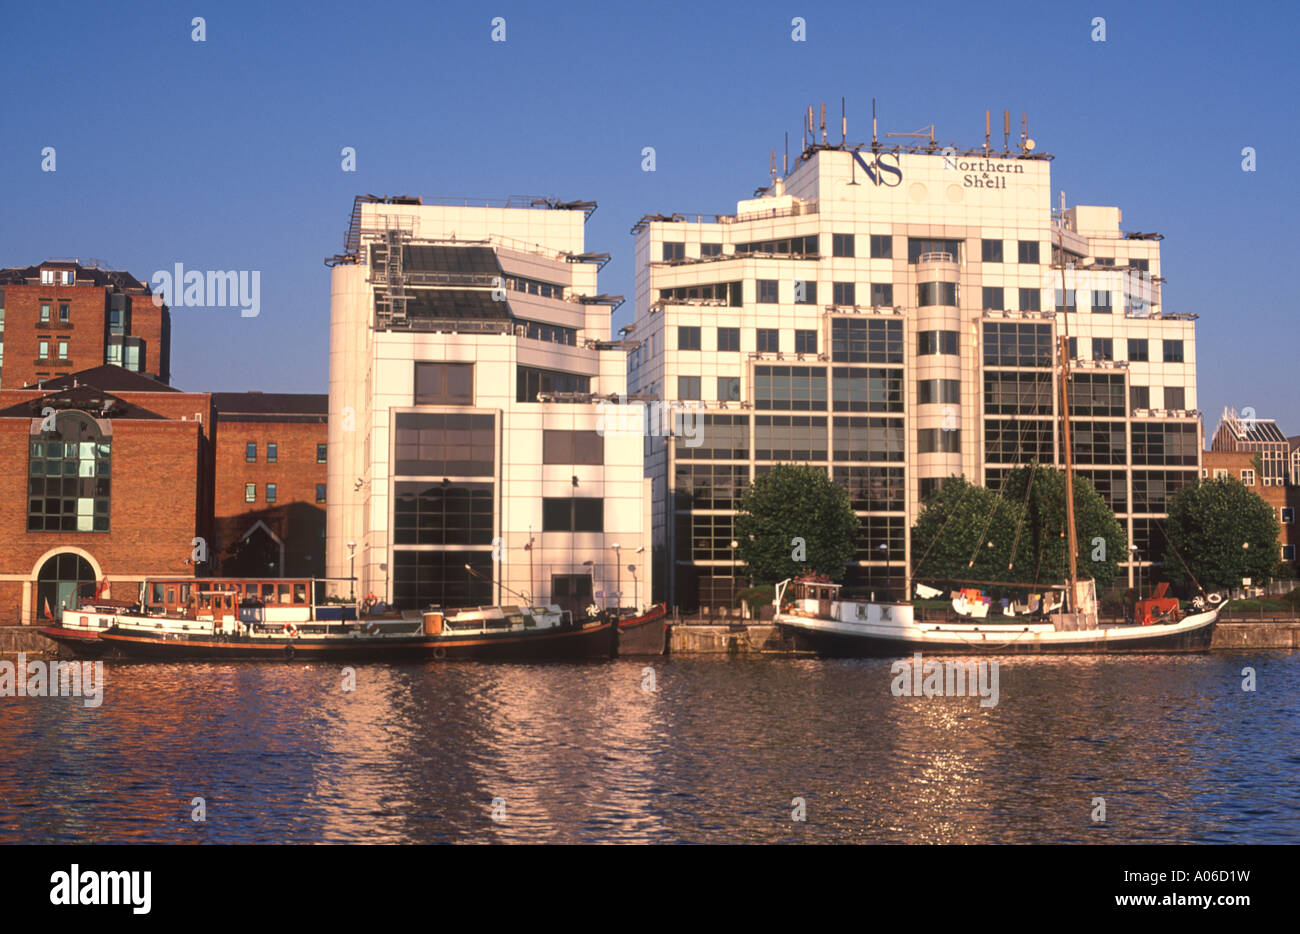 Quayside living: office buildings, apartments and live-aboard Dutch barges on Millwall Outer Dock, London Docklands, England - Stock Image